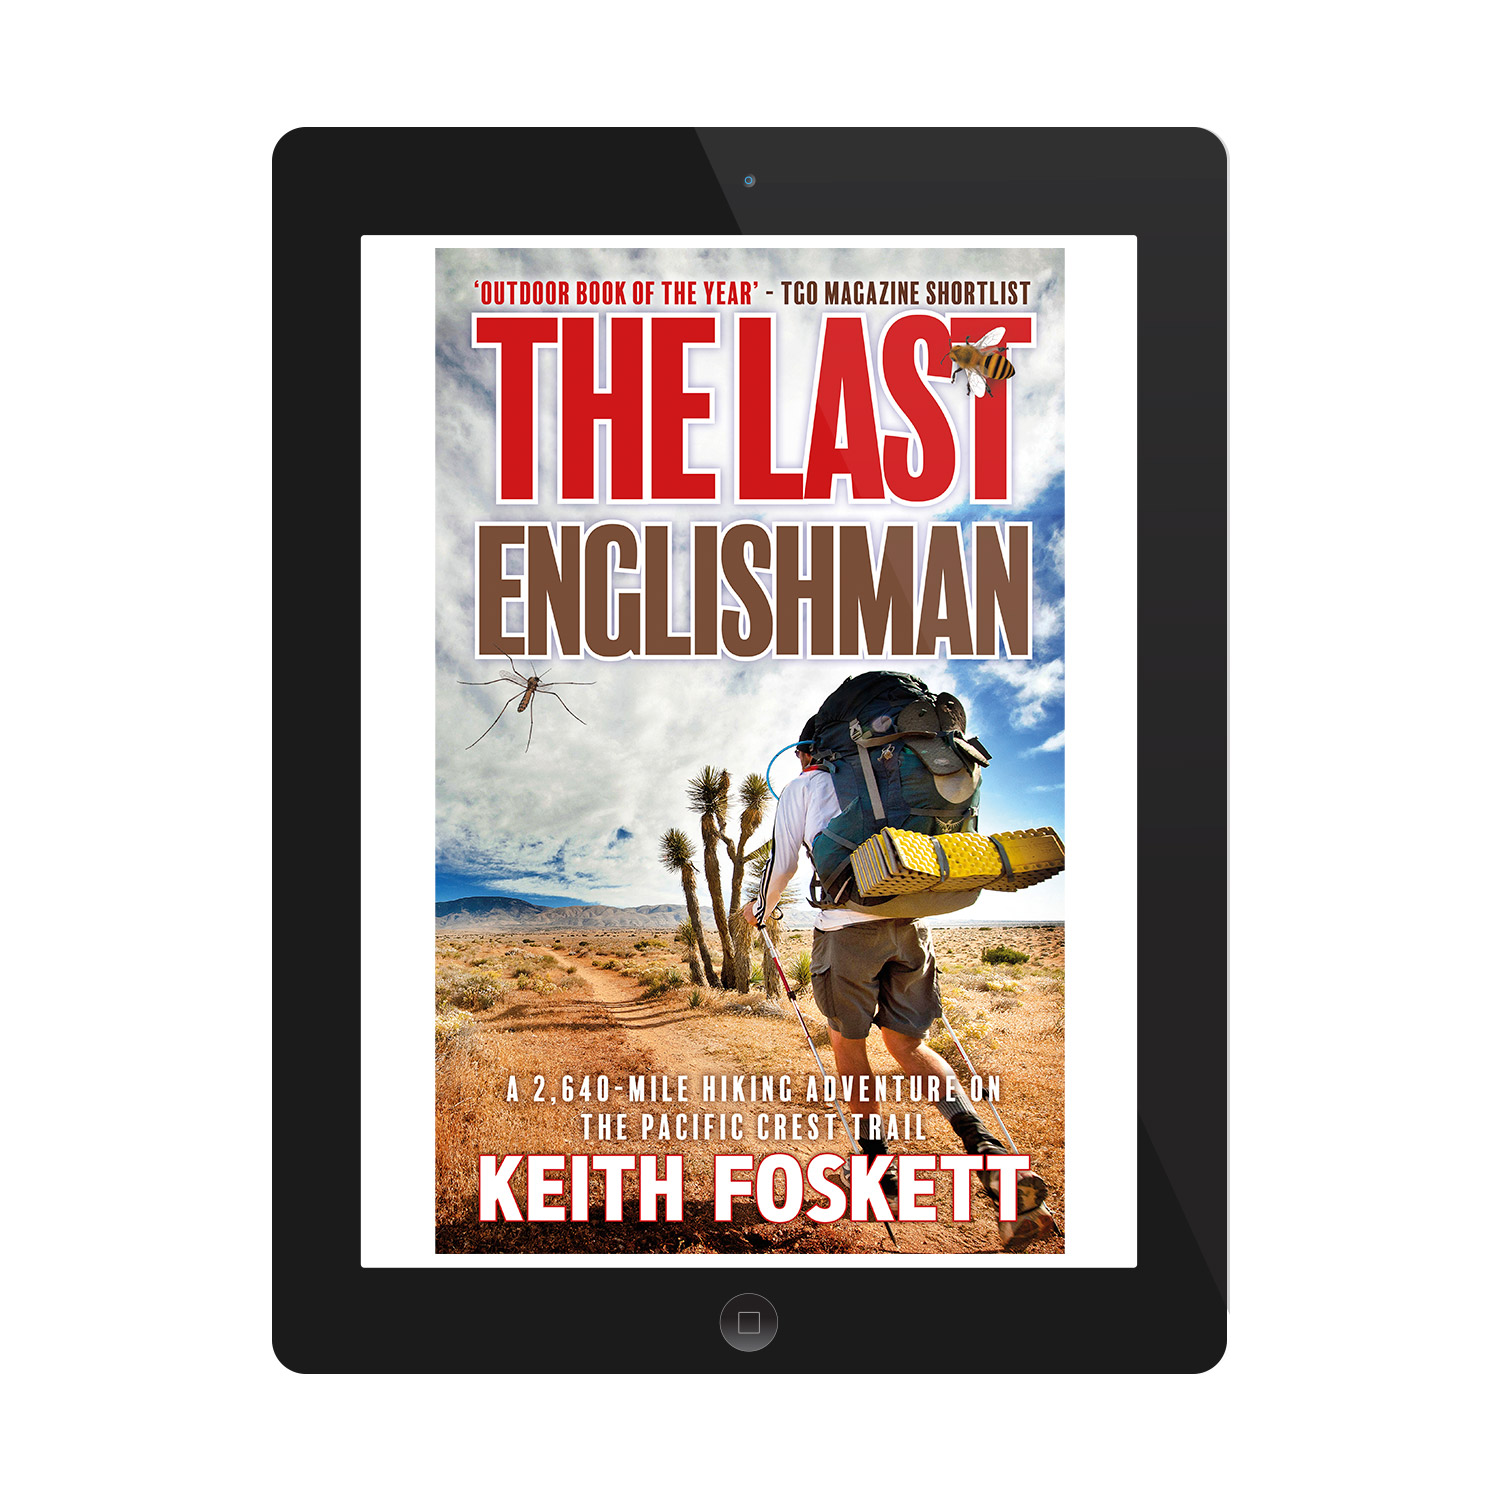 'The Last Englishman' is an excellent humorous walking memoir, about one man's trek along the Pacific Coast Trail. The author is Keith Foskett. The book cover was designed by Mark Thomas, of coverness.com. To find out more about my book design services, please visit www.coverness.com.